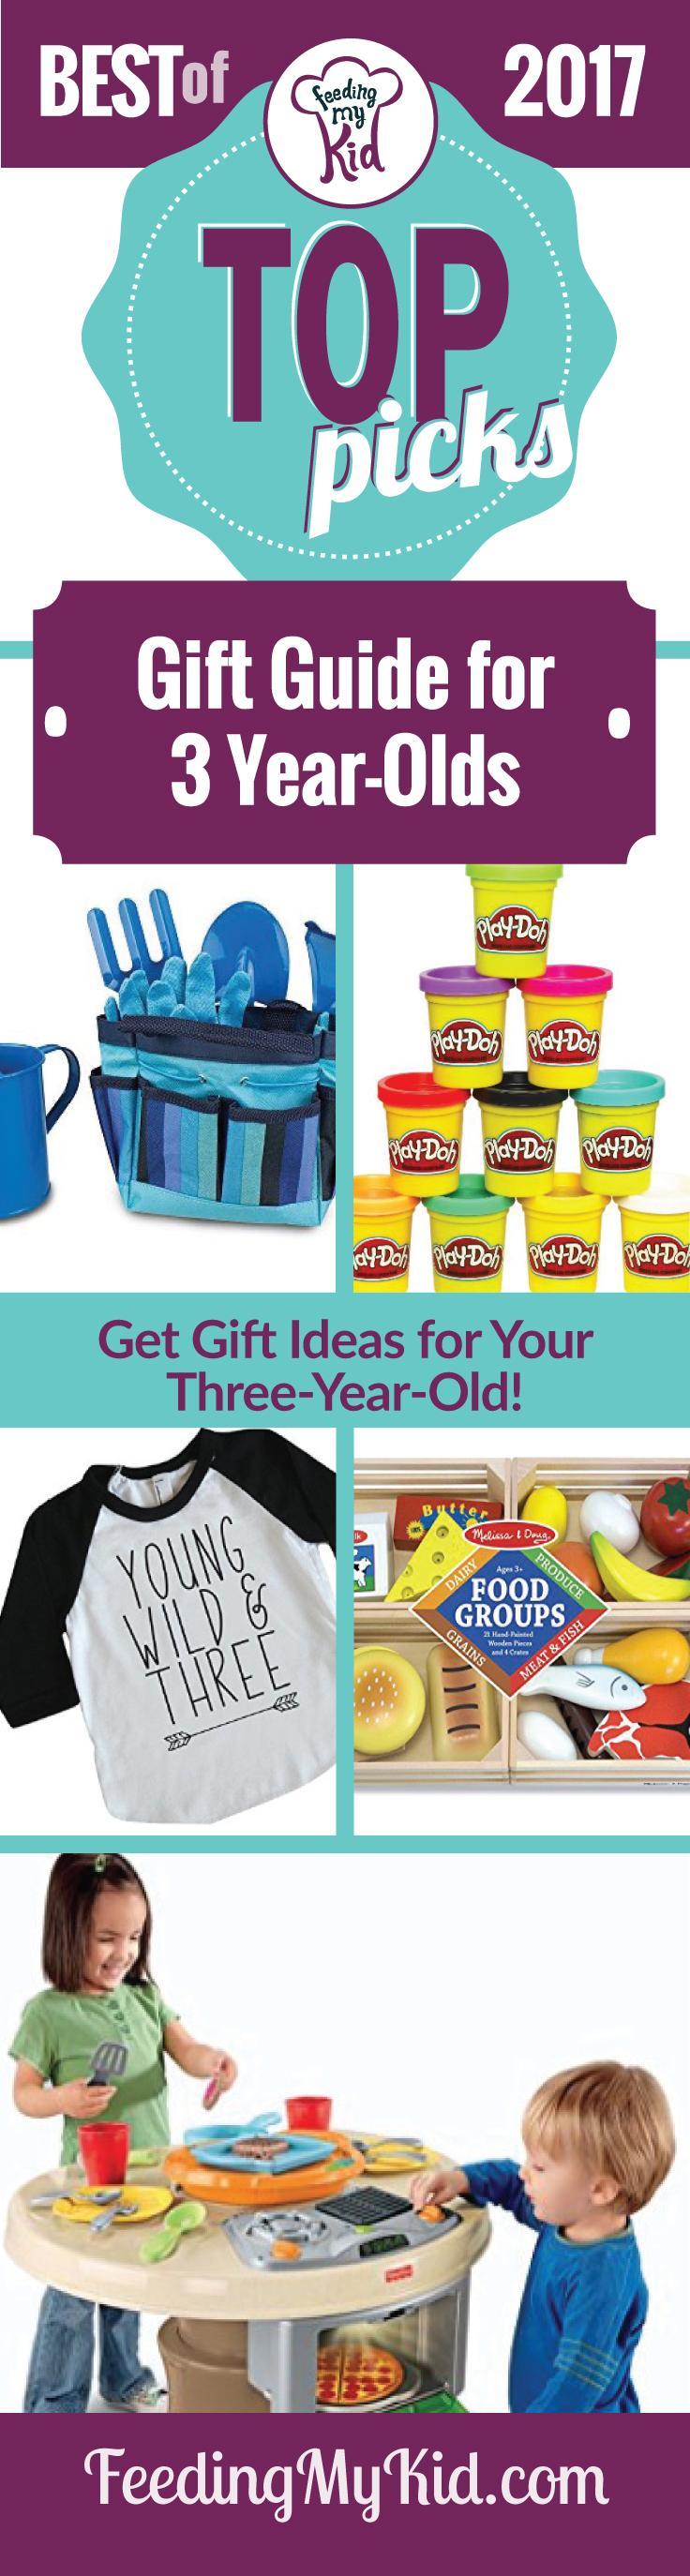 We put together this list of gifts for 3 year olds for parents to get inspired! Your kid will love to play with these toys.